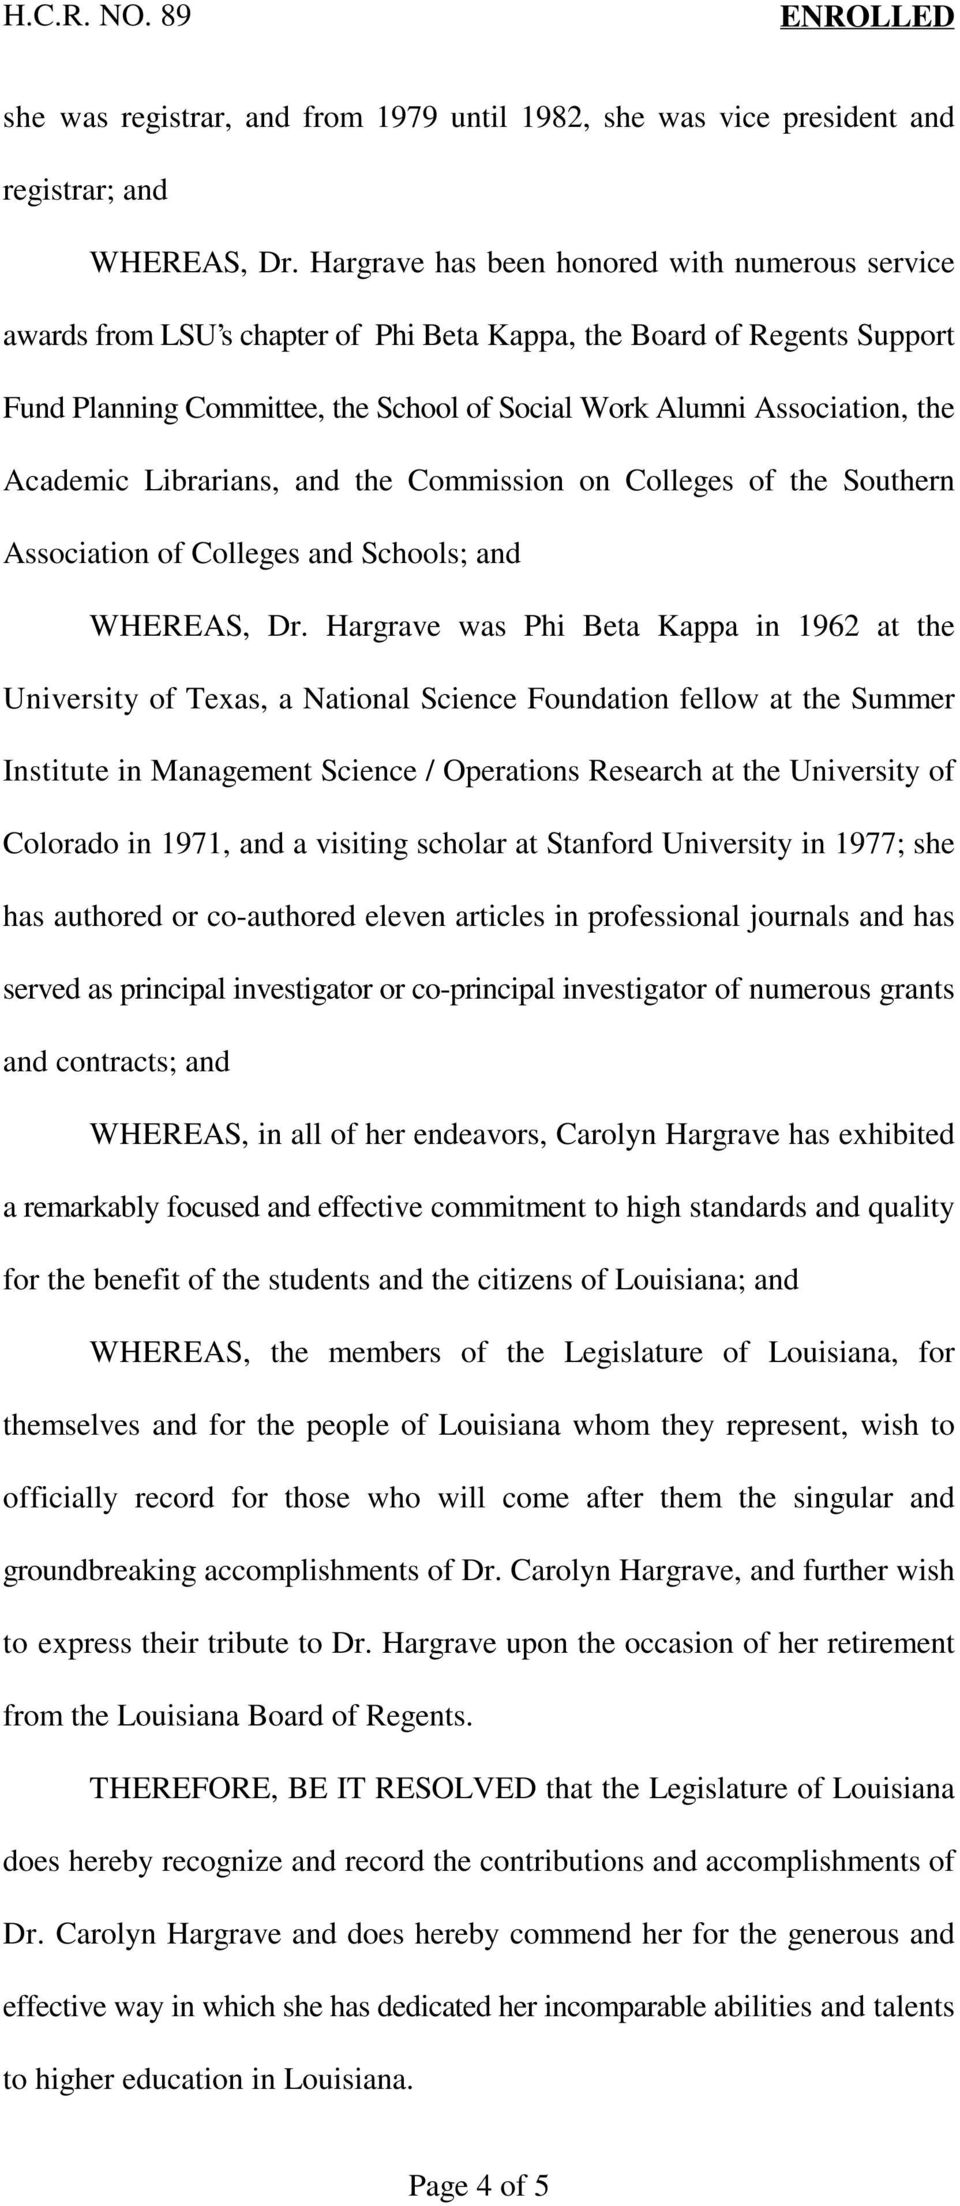 Academic Librarians, and the Commission on Colleges of the Southern Association of Colleges and Schools; and WHEREAS, Dr.